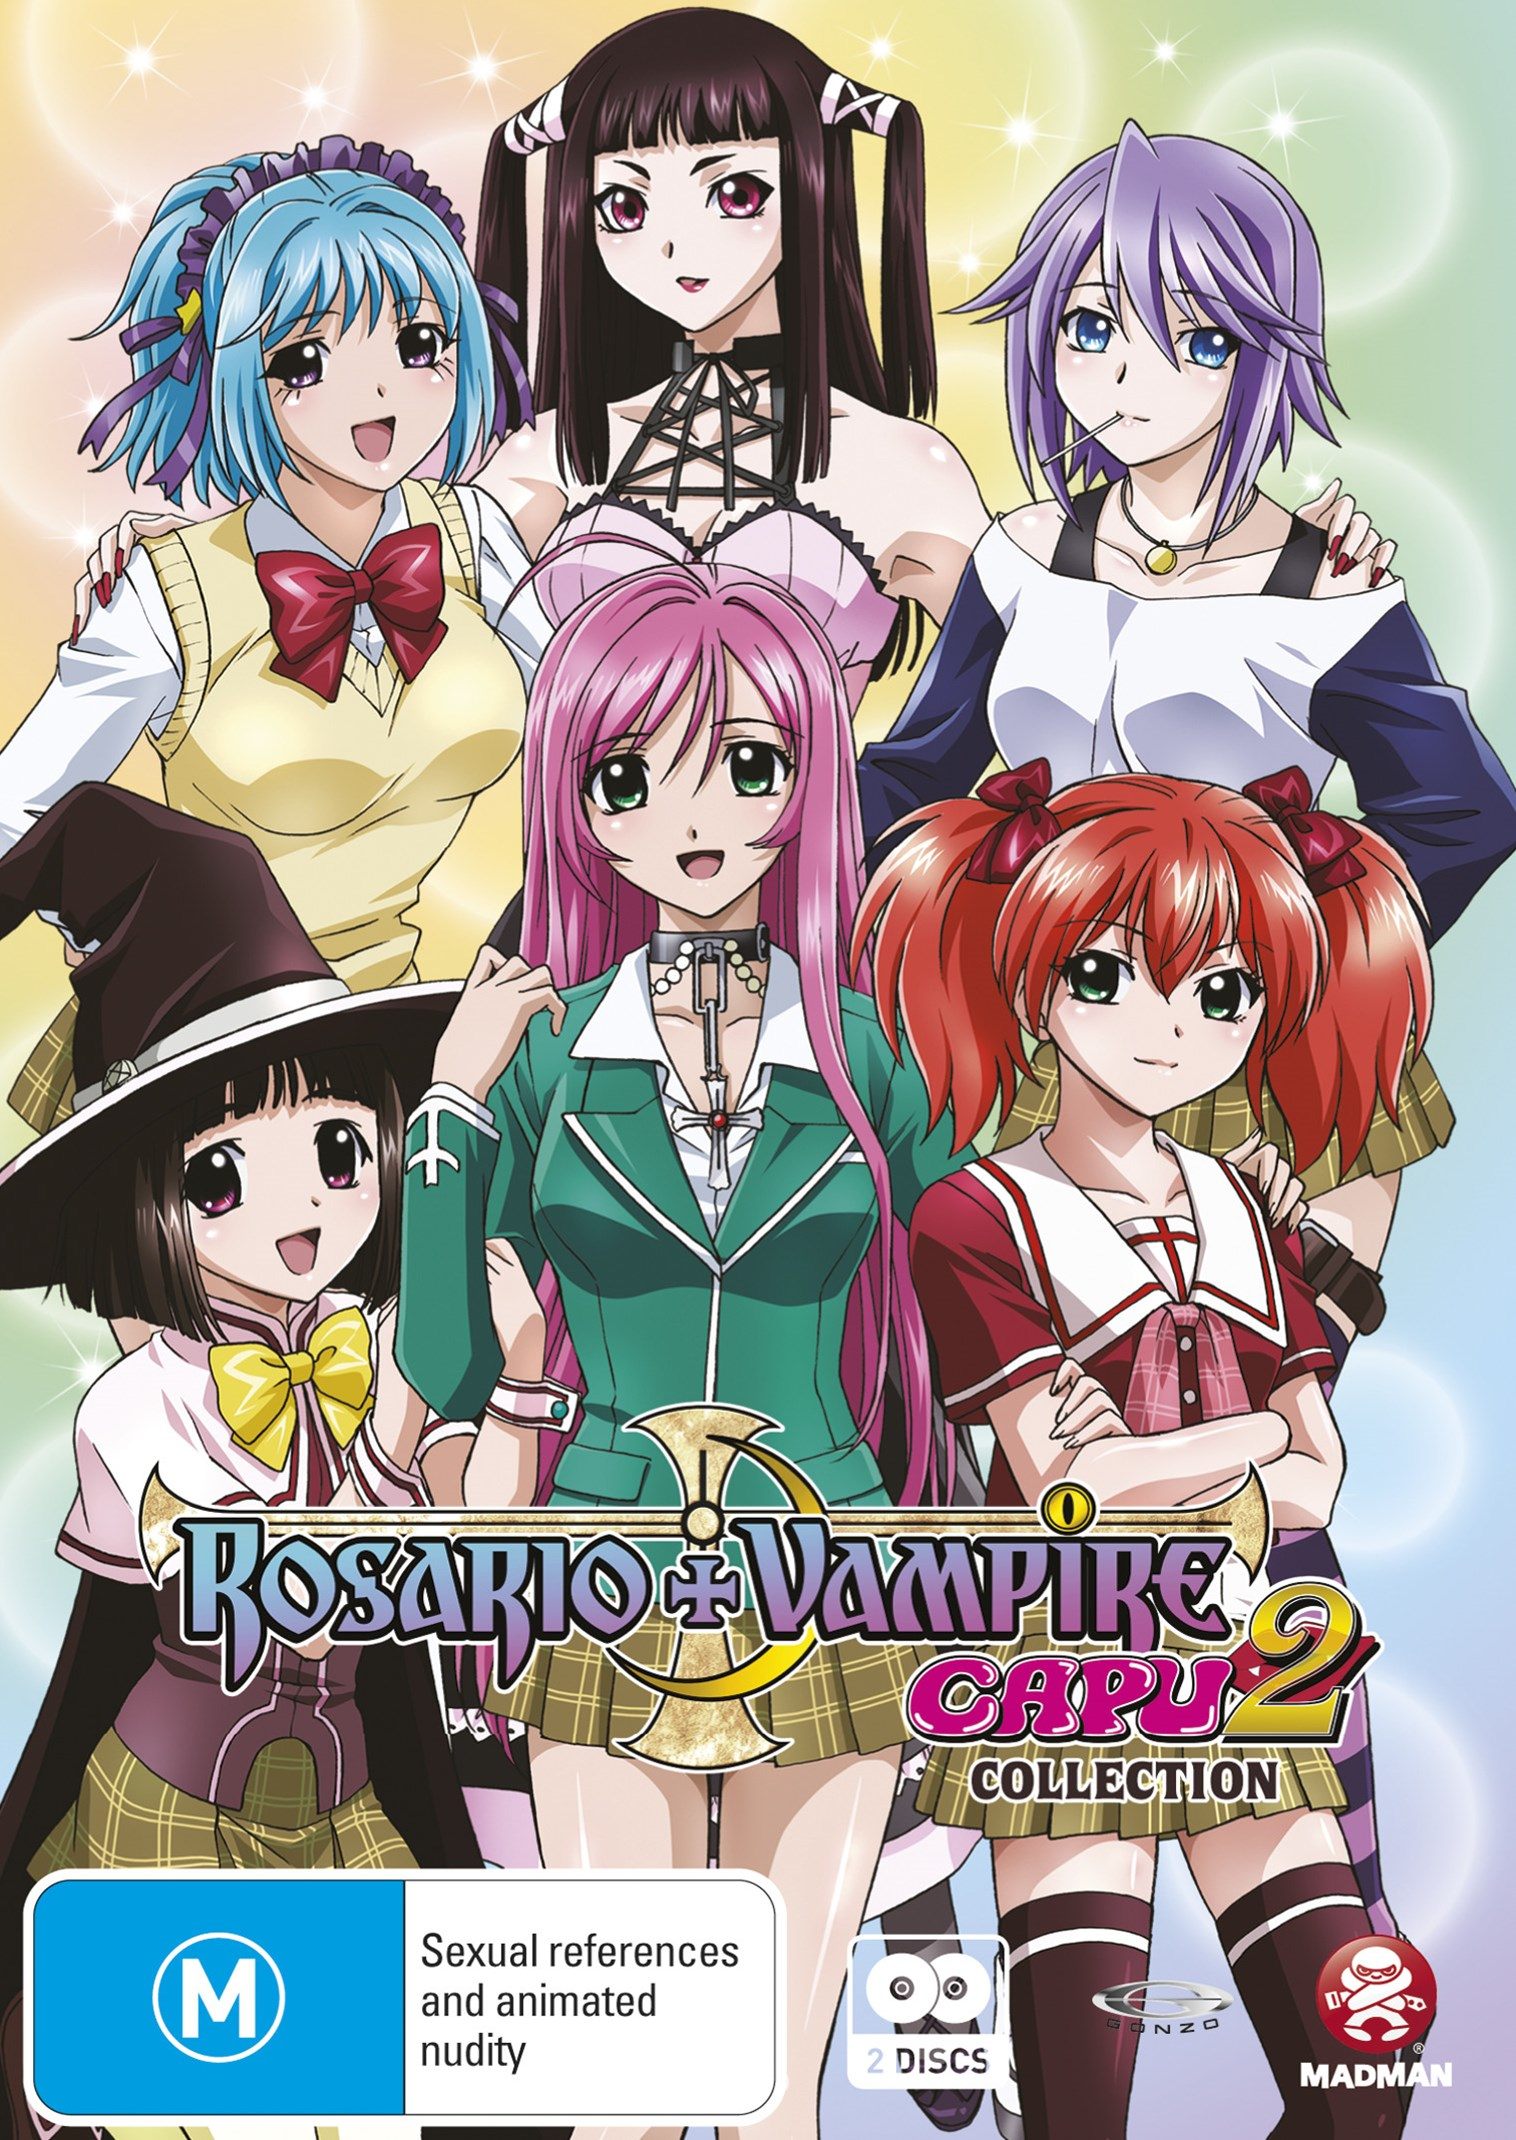 Rosario + Vampire Capu2 (Season 2) Collection